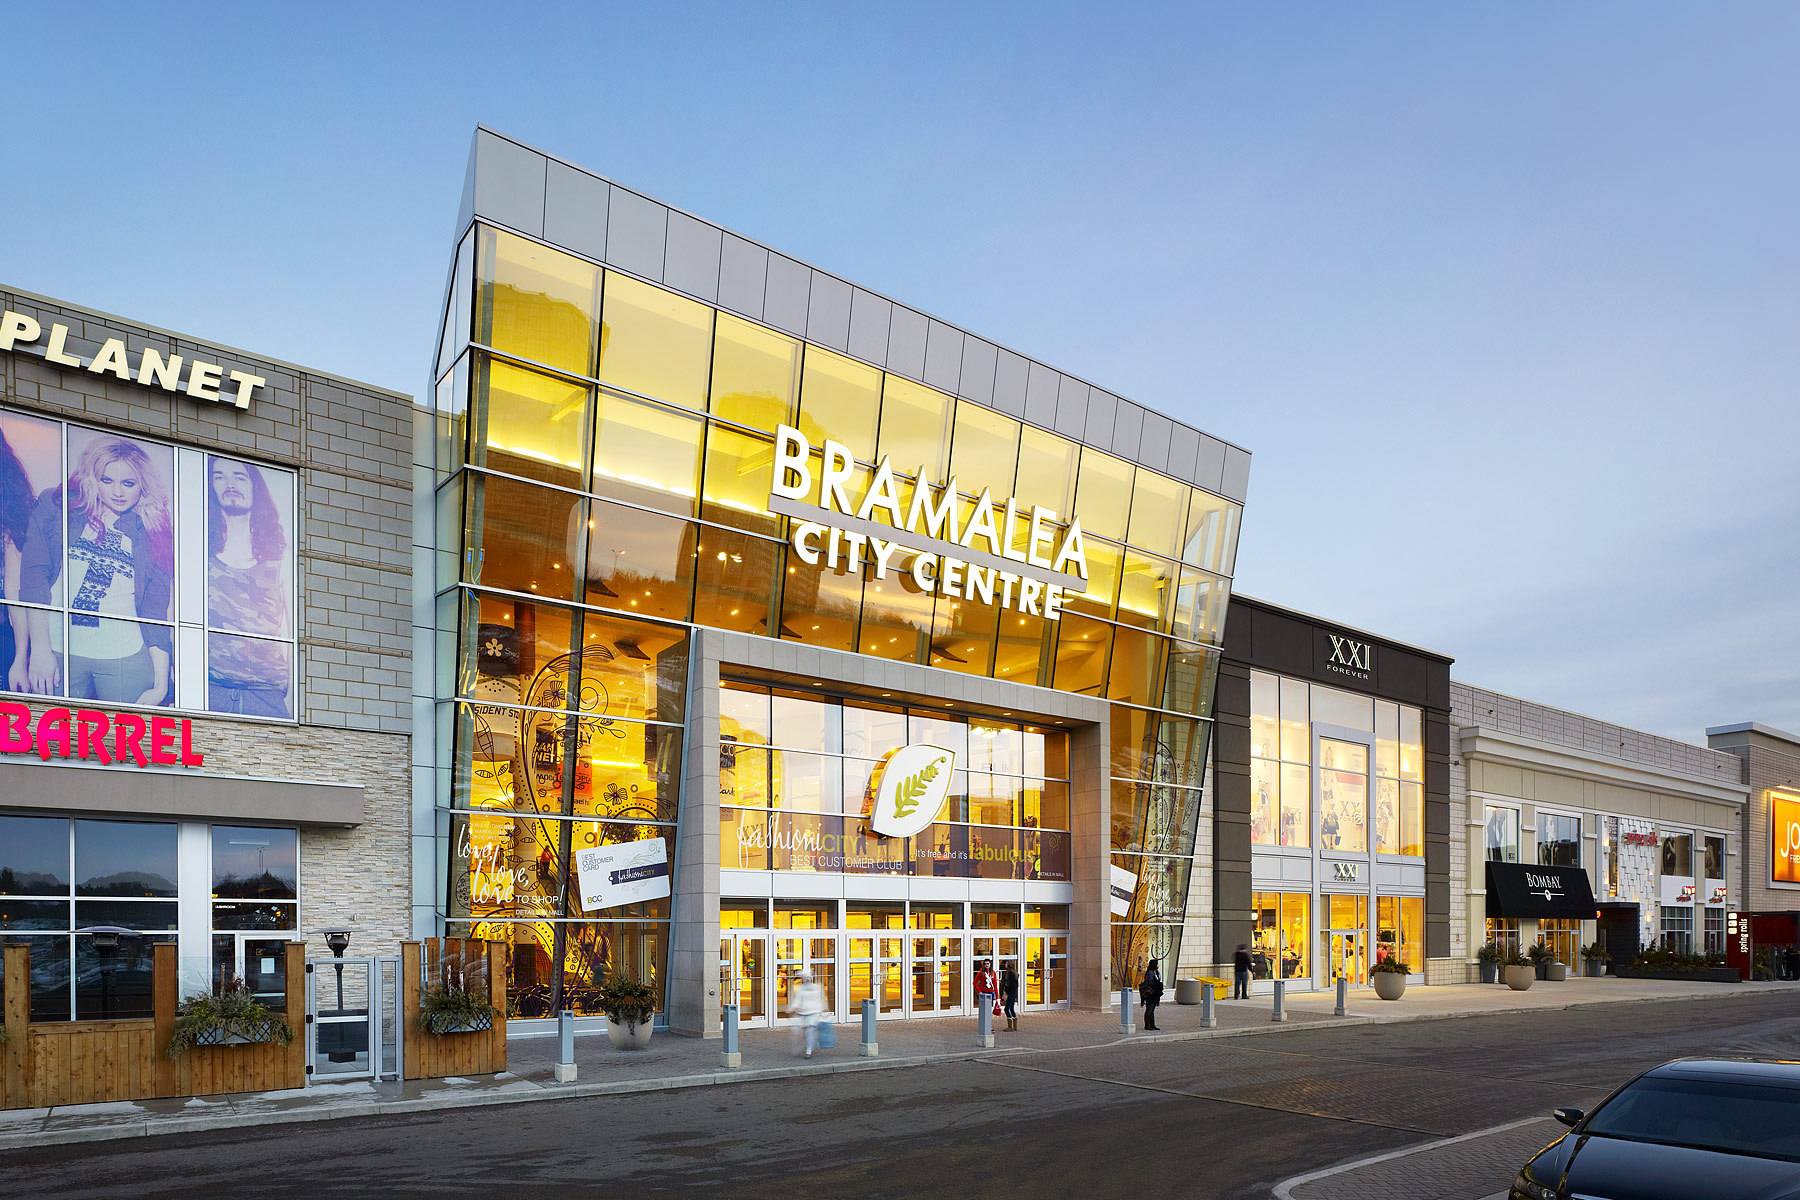 Centennial Mall is located in Brampton, Ontario - Vodden St E, Brampton, ON L6V 1N2 (GPS: , ). Look at the list of stores in Centennial Mall, hours, location and information about mall and special events, sales, coupons/5(1).